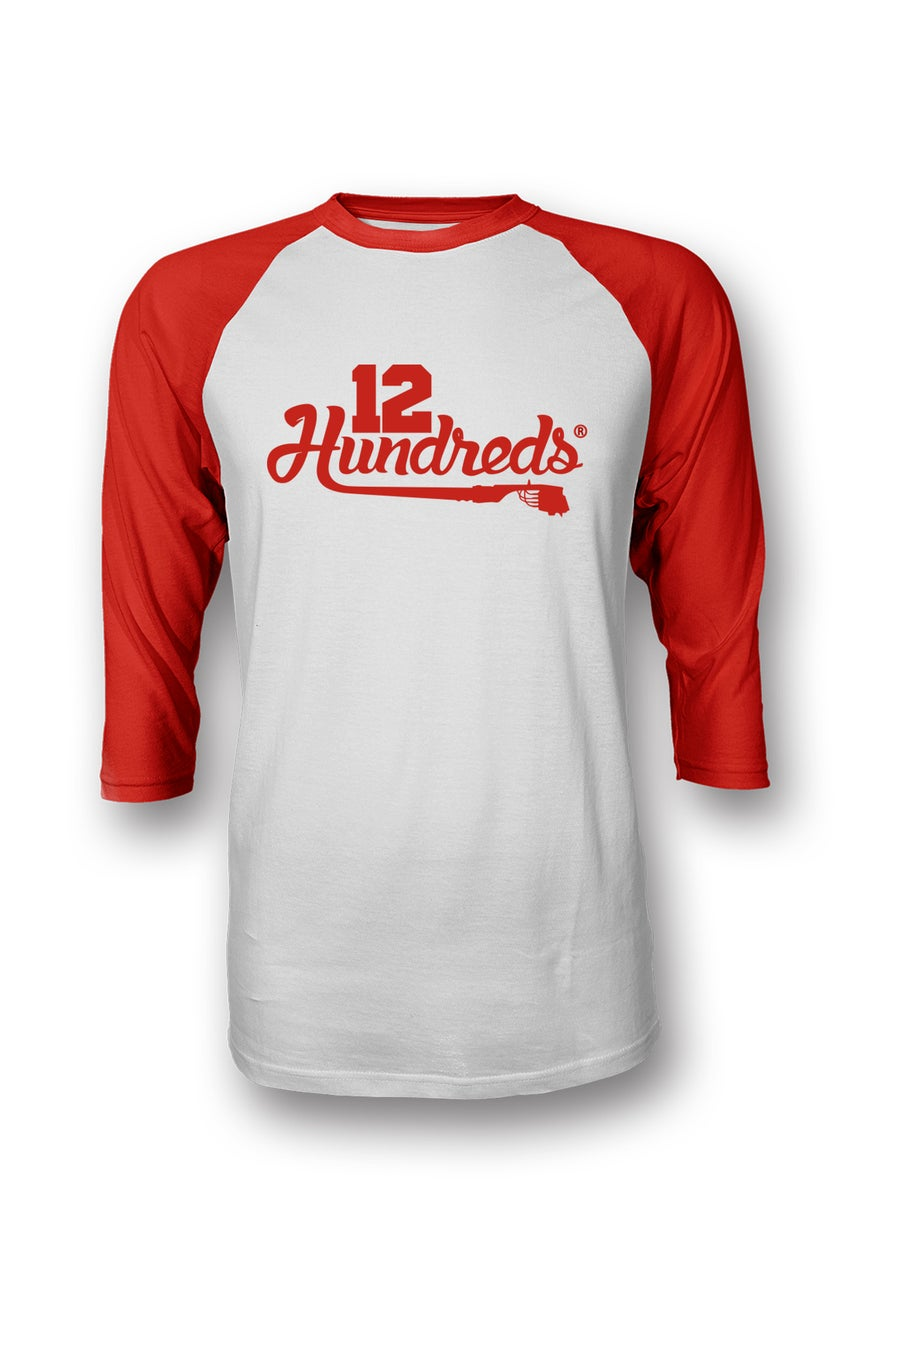 Image of Team 12 hundreds : RED RAGLAN